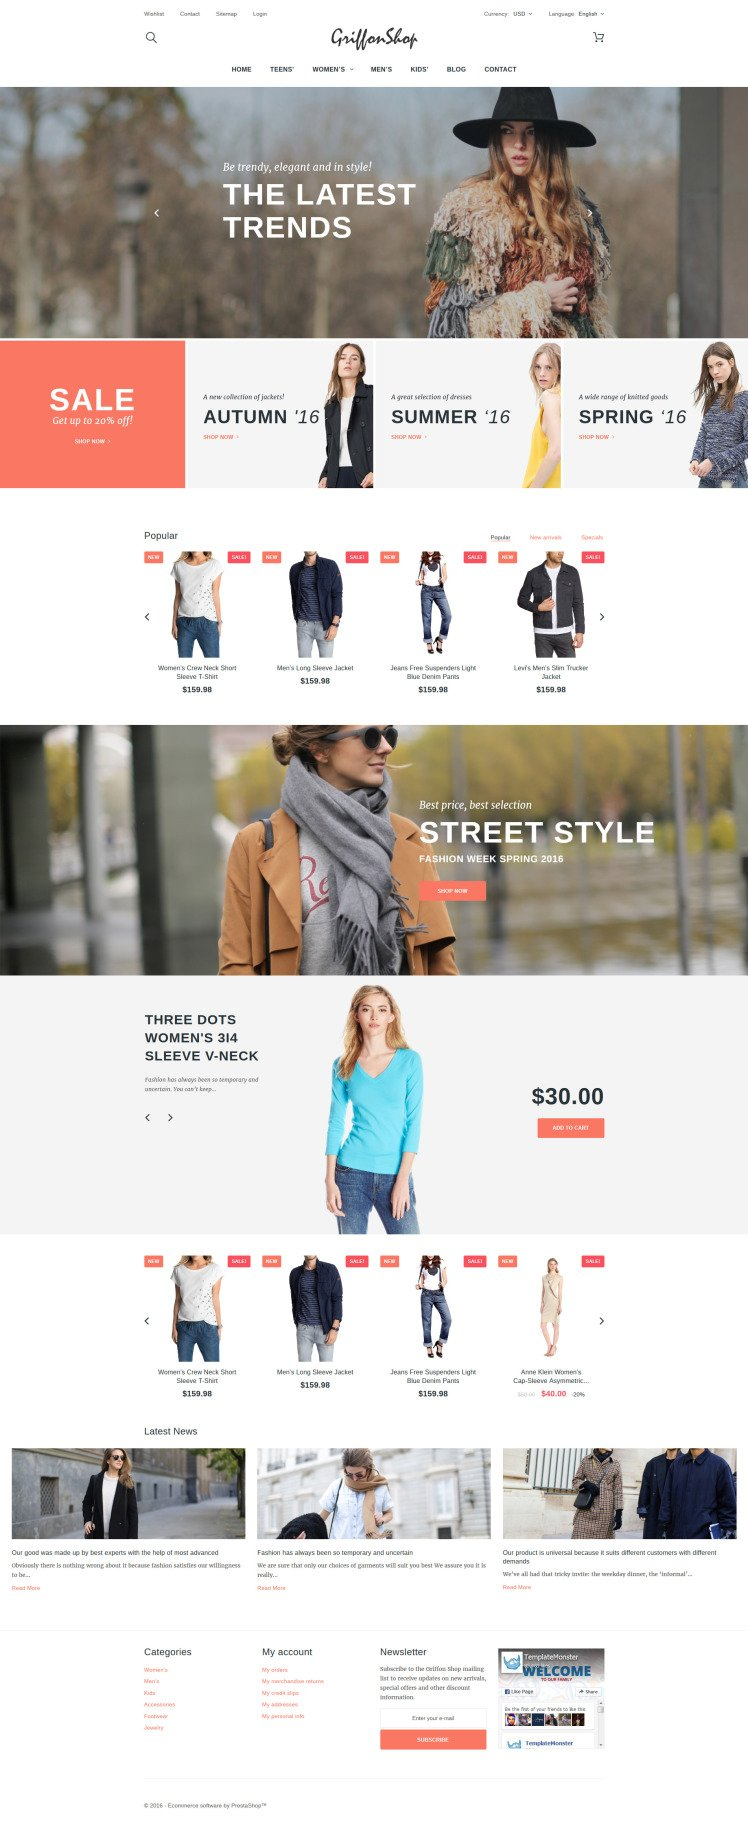 Griffon Shop Apparel PrestaShop Themes